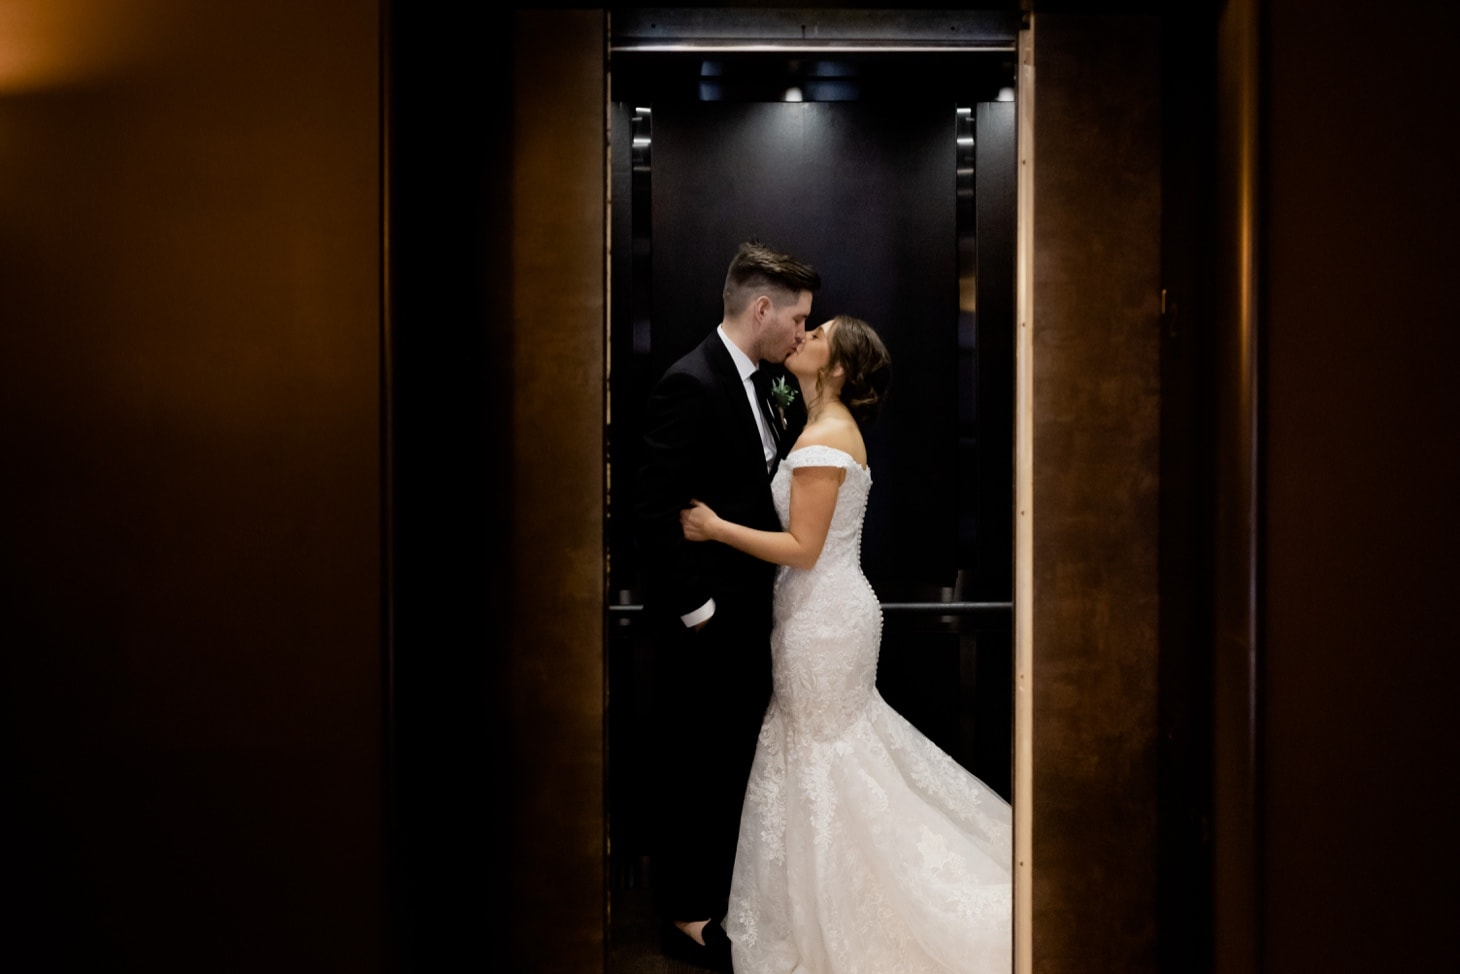 Surety hotel weddings